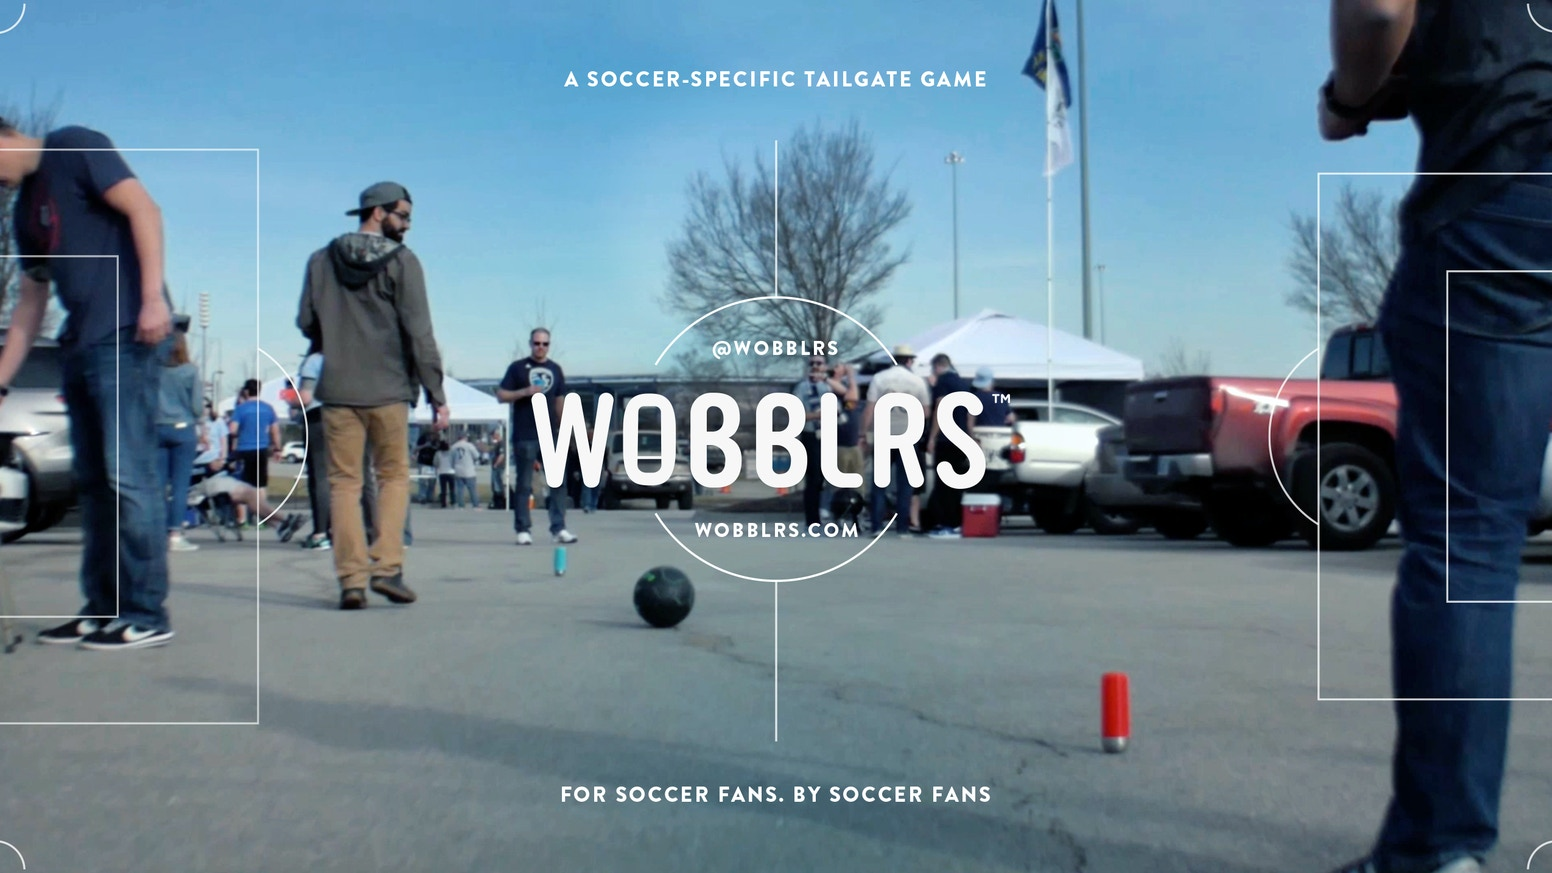 Wobblrs, the first and only tailgate game for soccer fans, an exciting recreational and developmental tool for all ages and abilities.